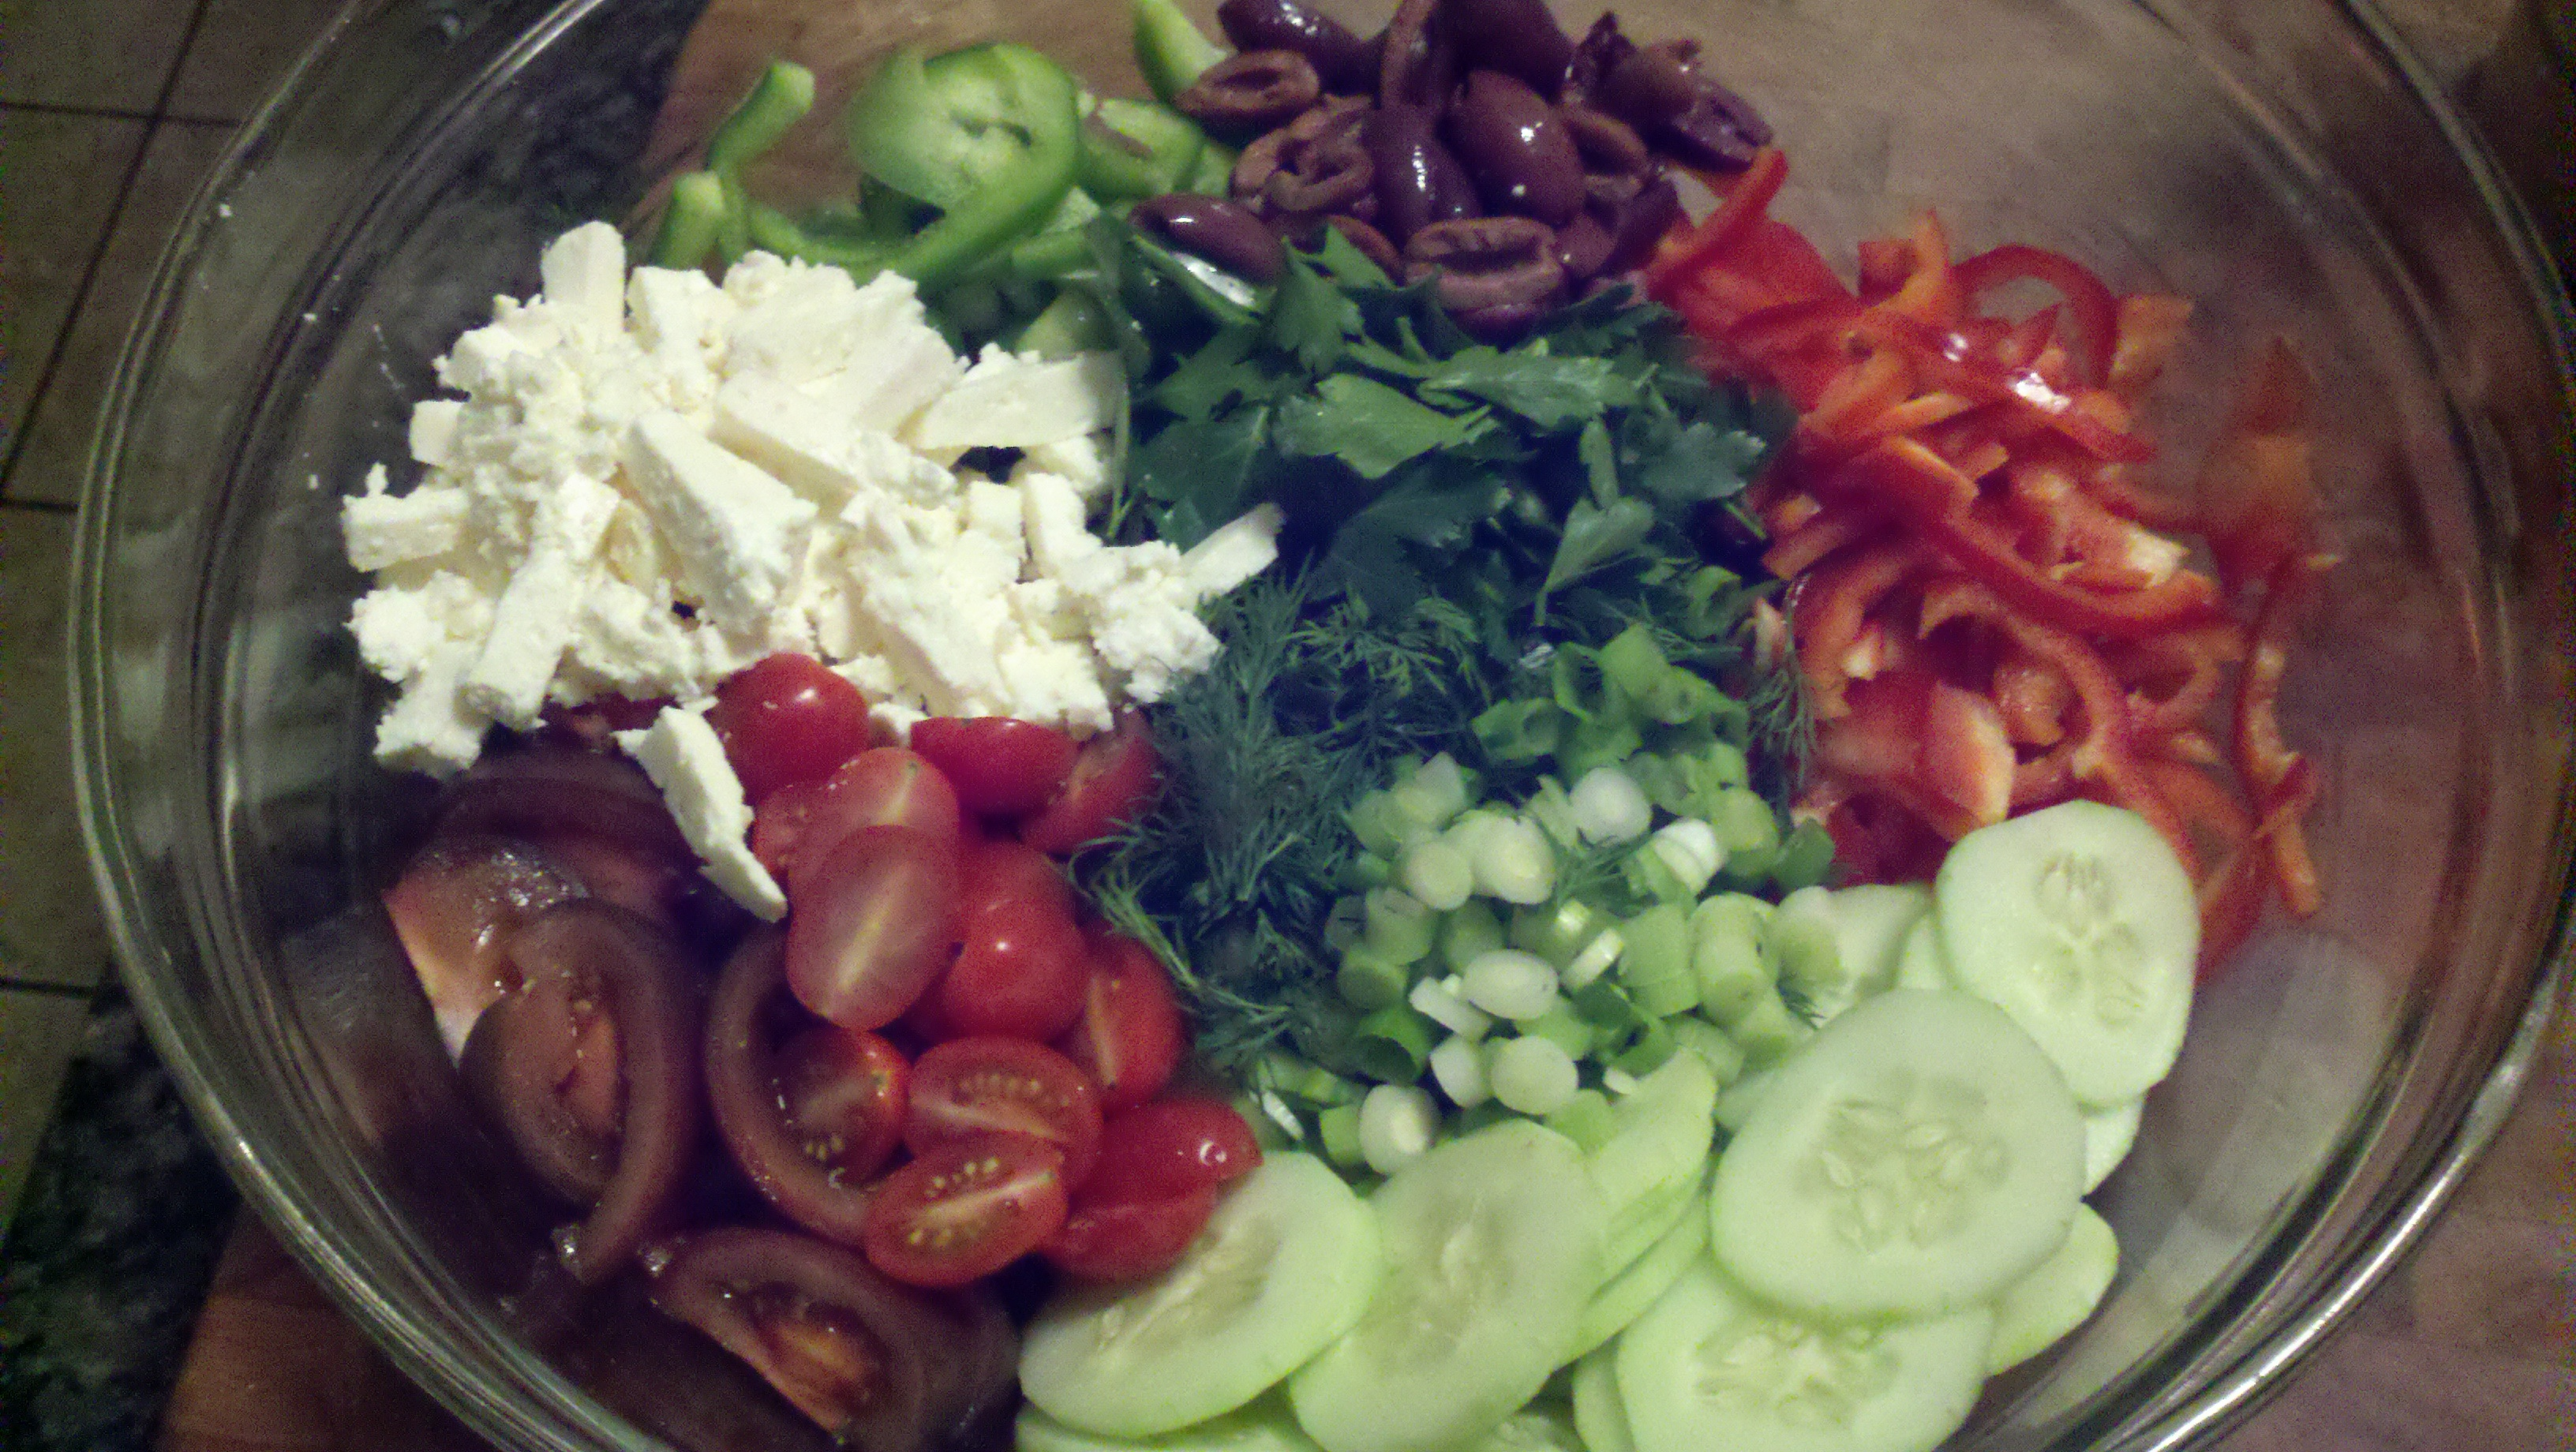 Hellenic Chopped and Sliced Salad